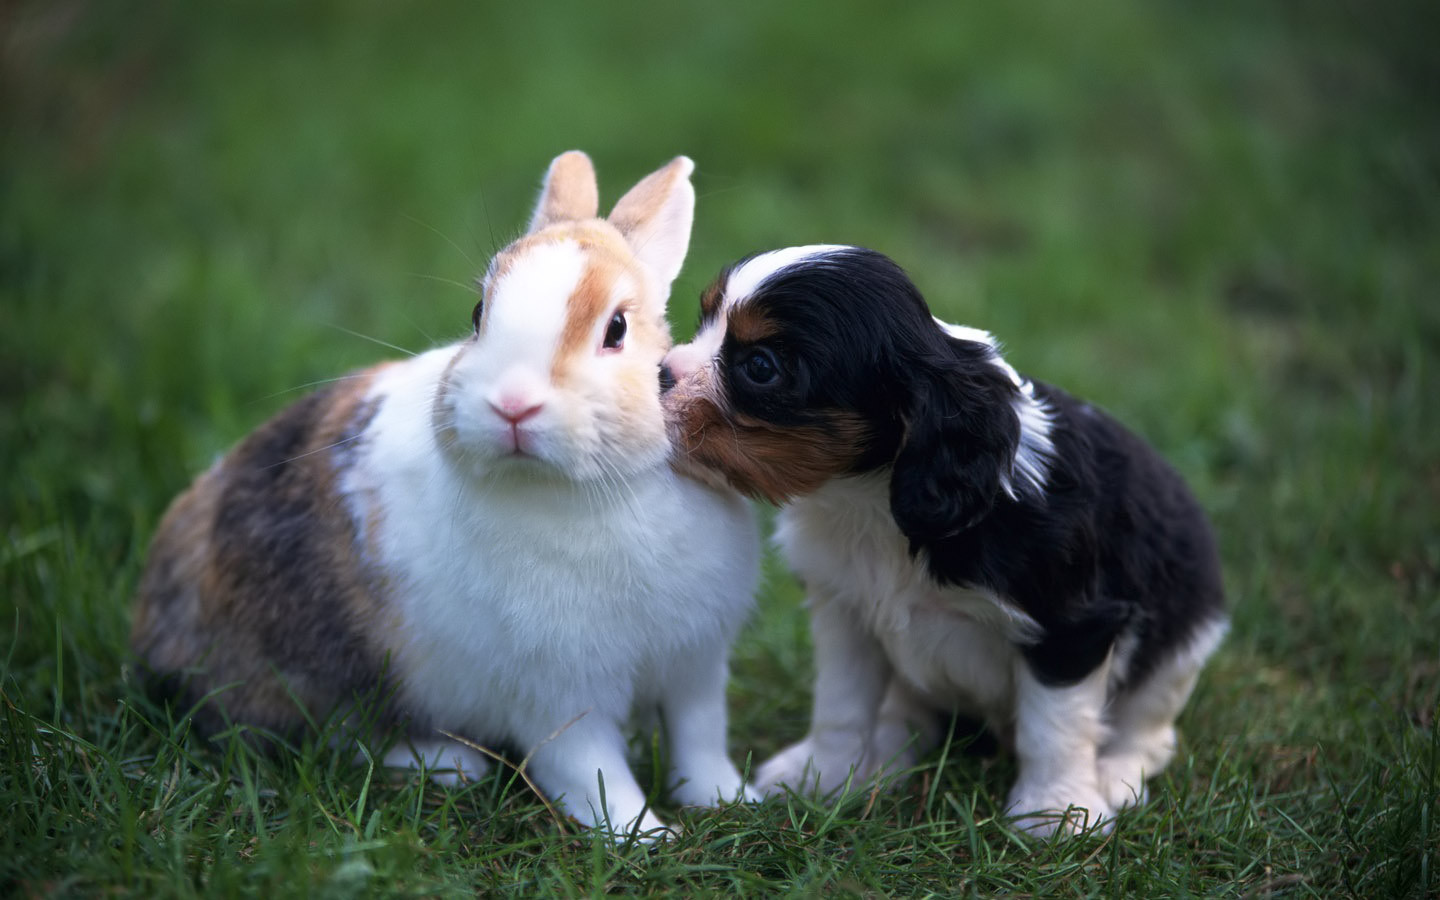 Teddybear64 Images Puppy And Rabbit HD Wallpaper Background Photos